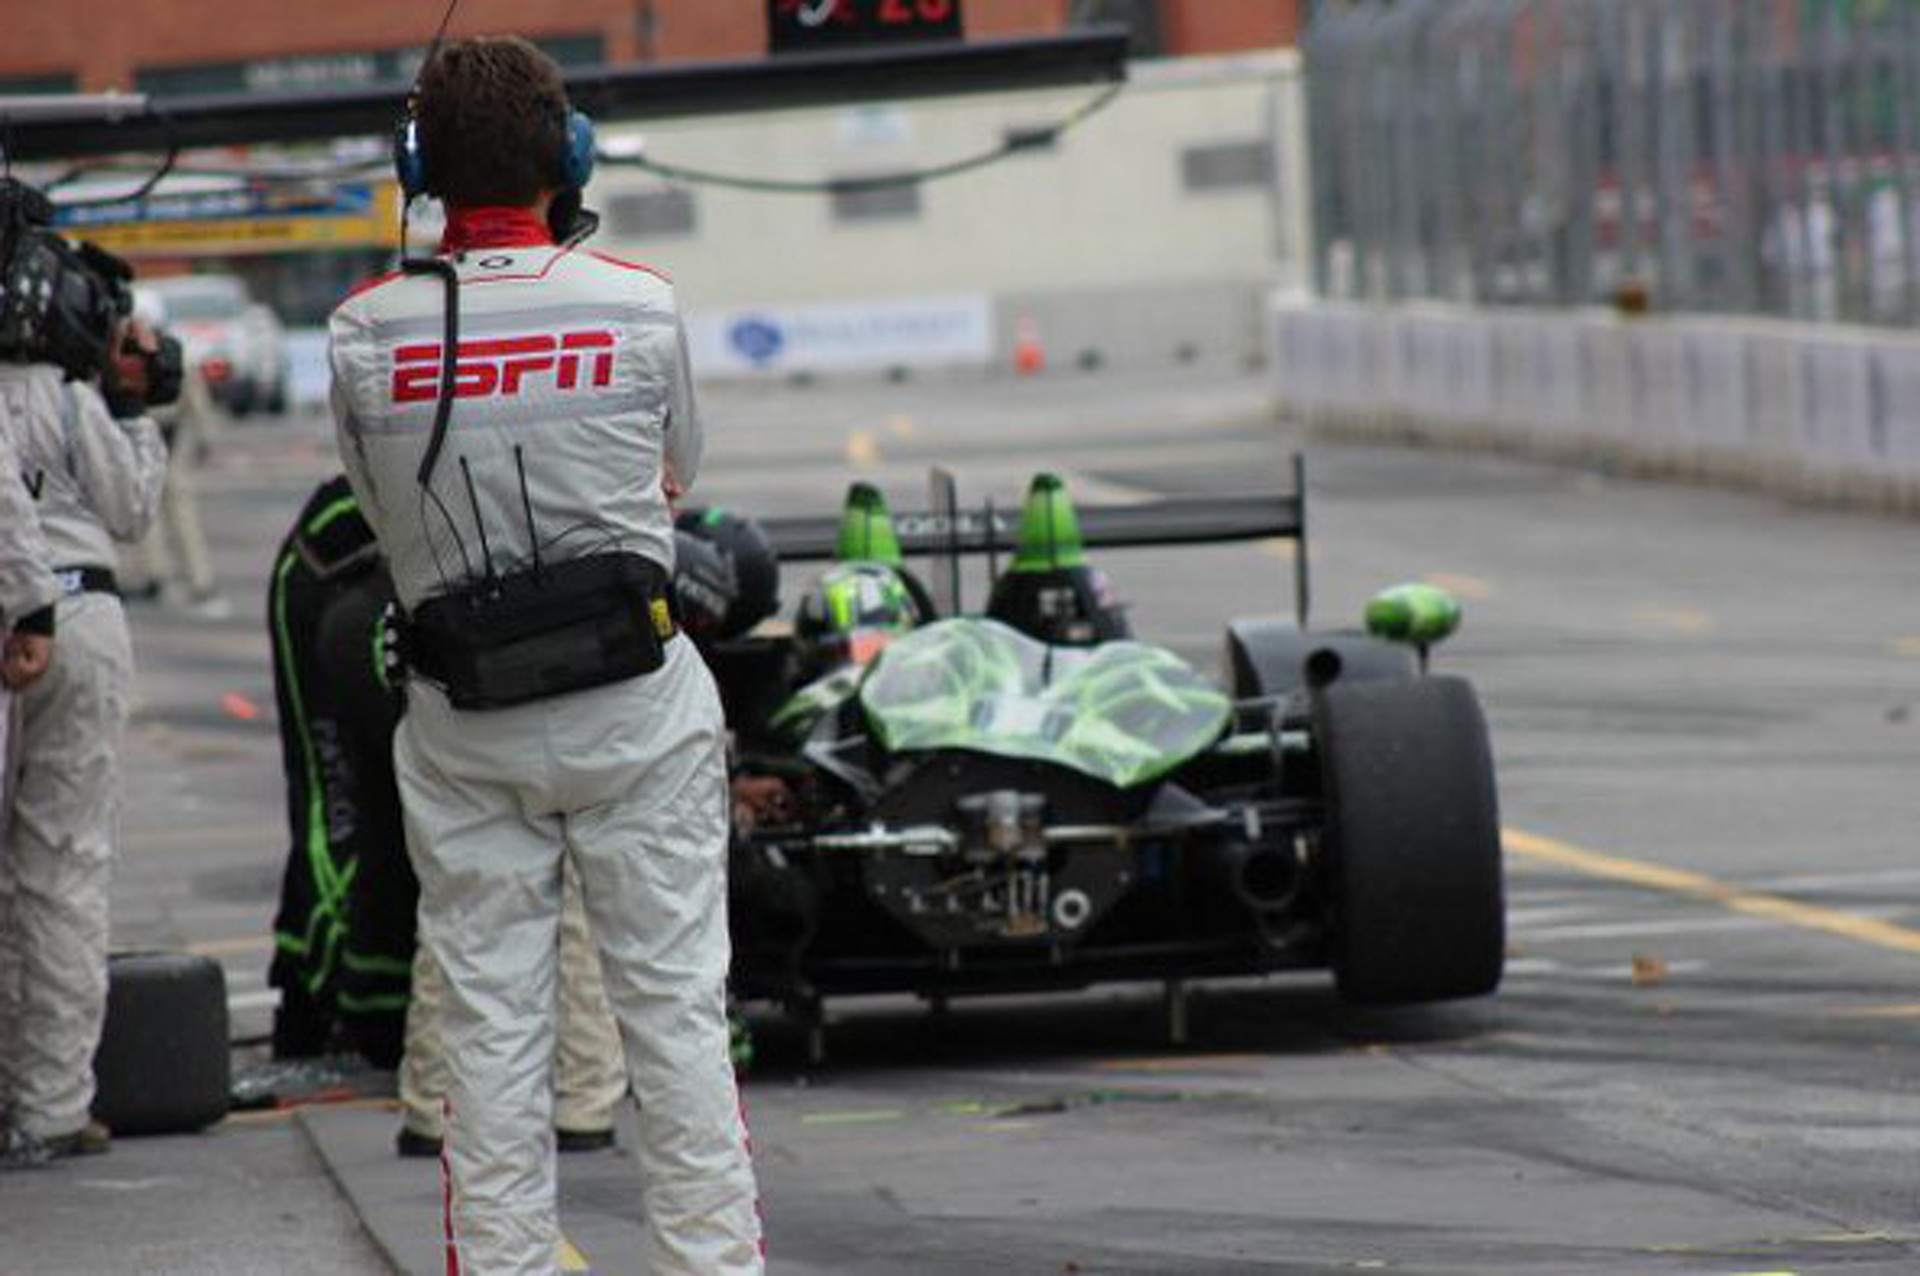 Photos: Racing The Streets of Baltimore From The Mechanic's View